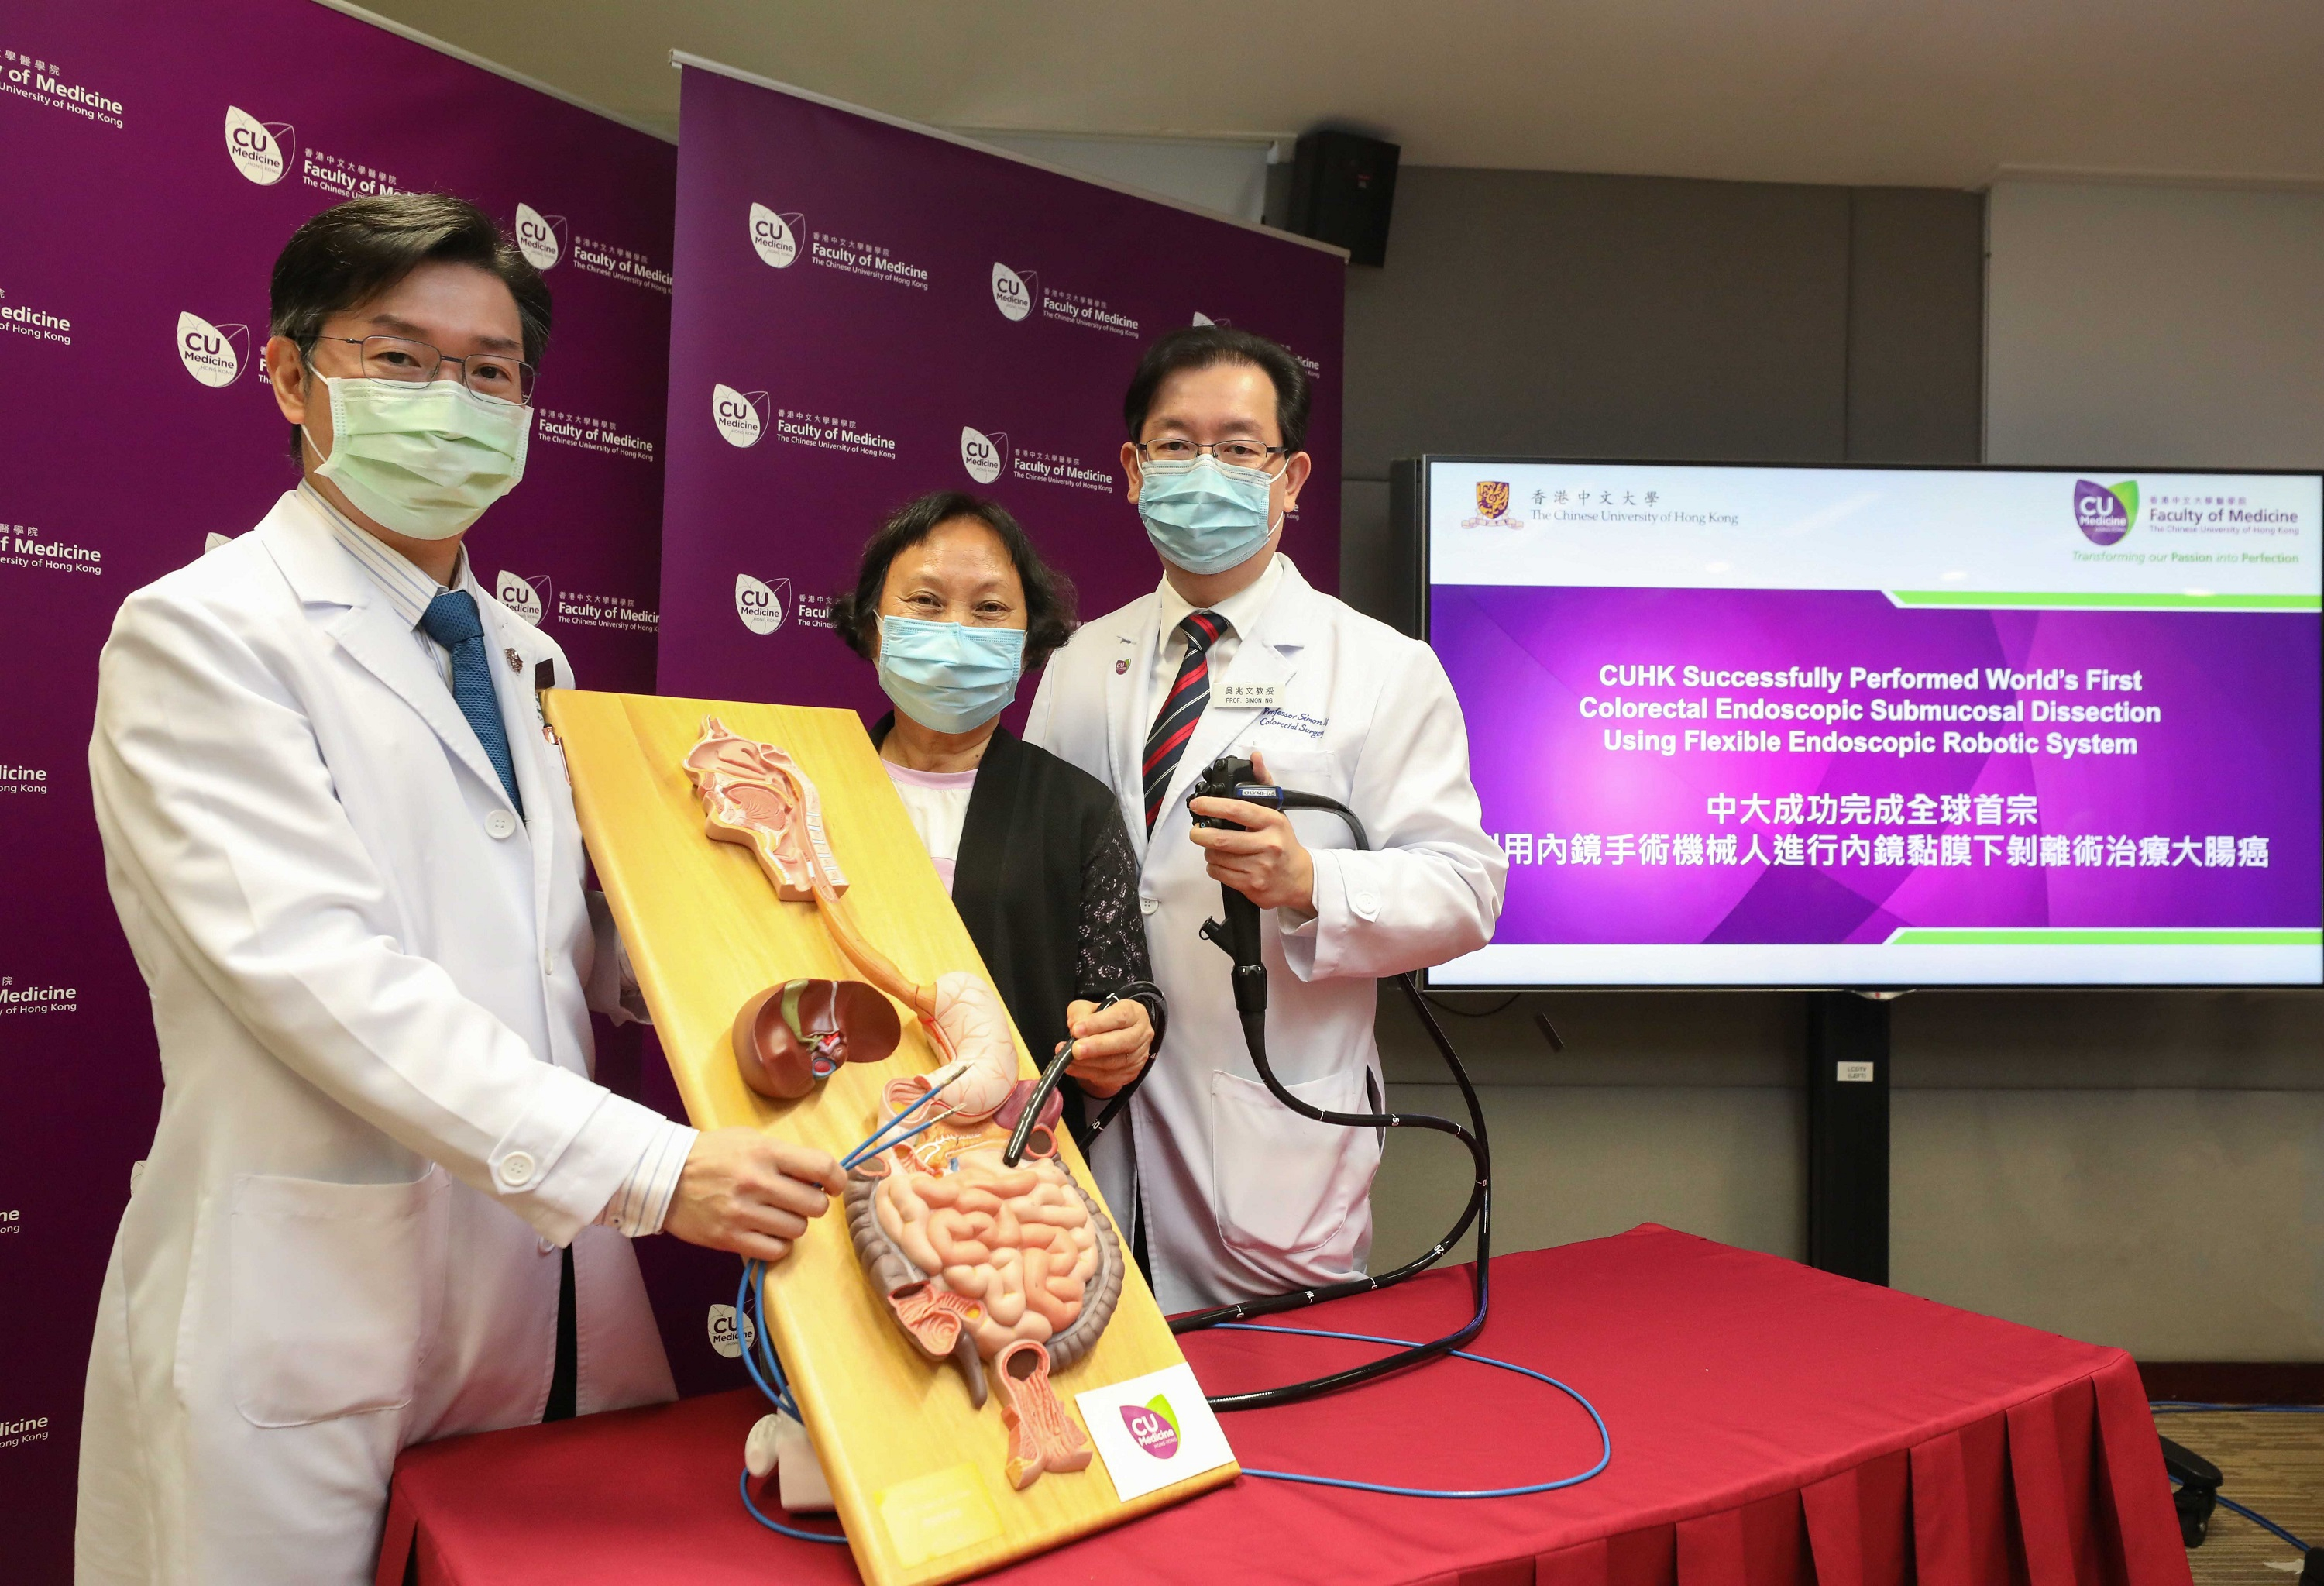 CUHK successfully performed world's first colorectal endoscopic submucosal dissection using flexible endoscopic robotic system. 